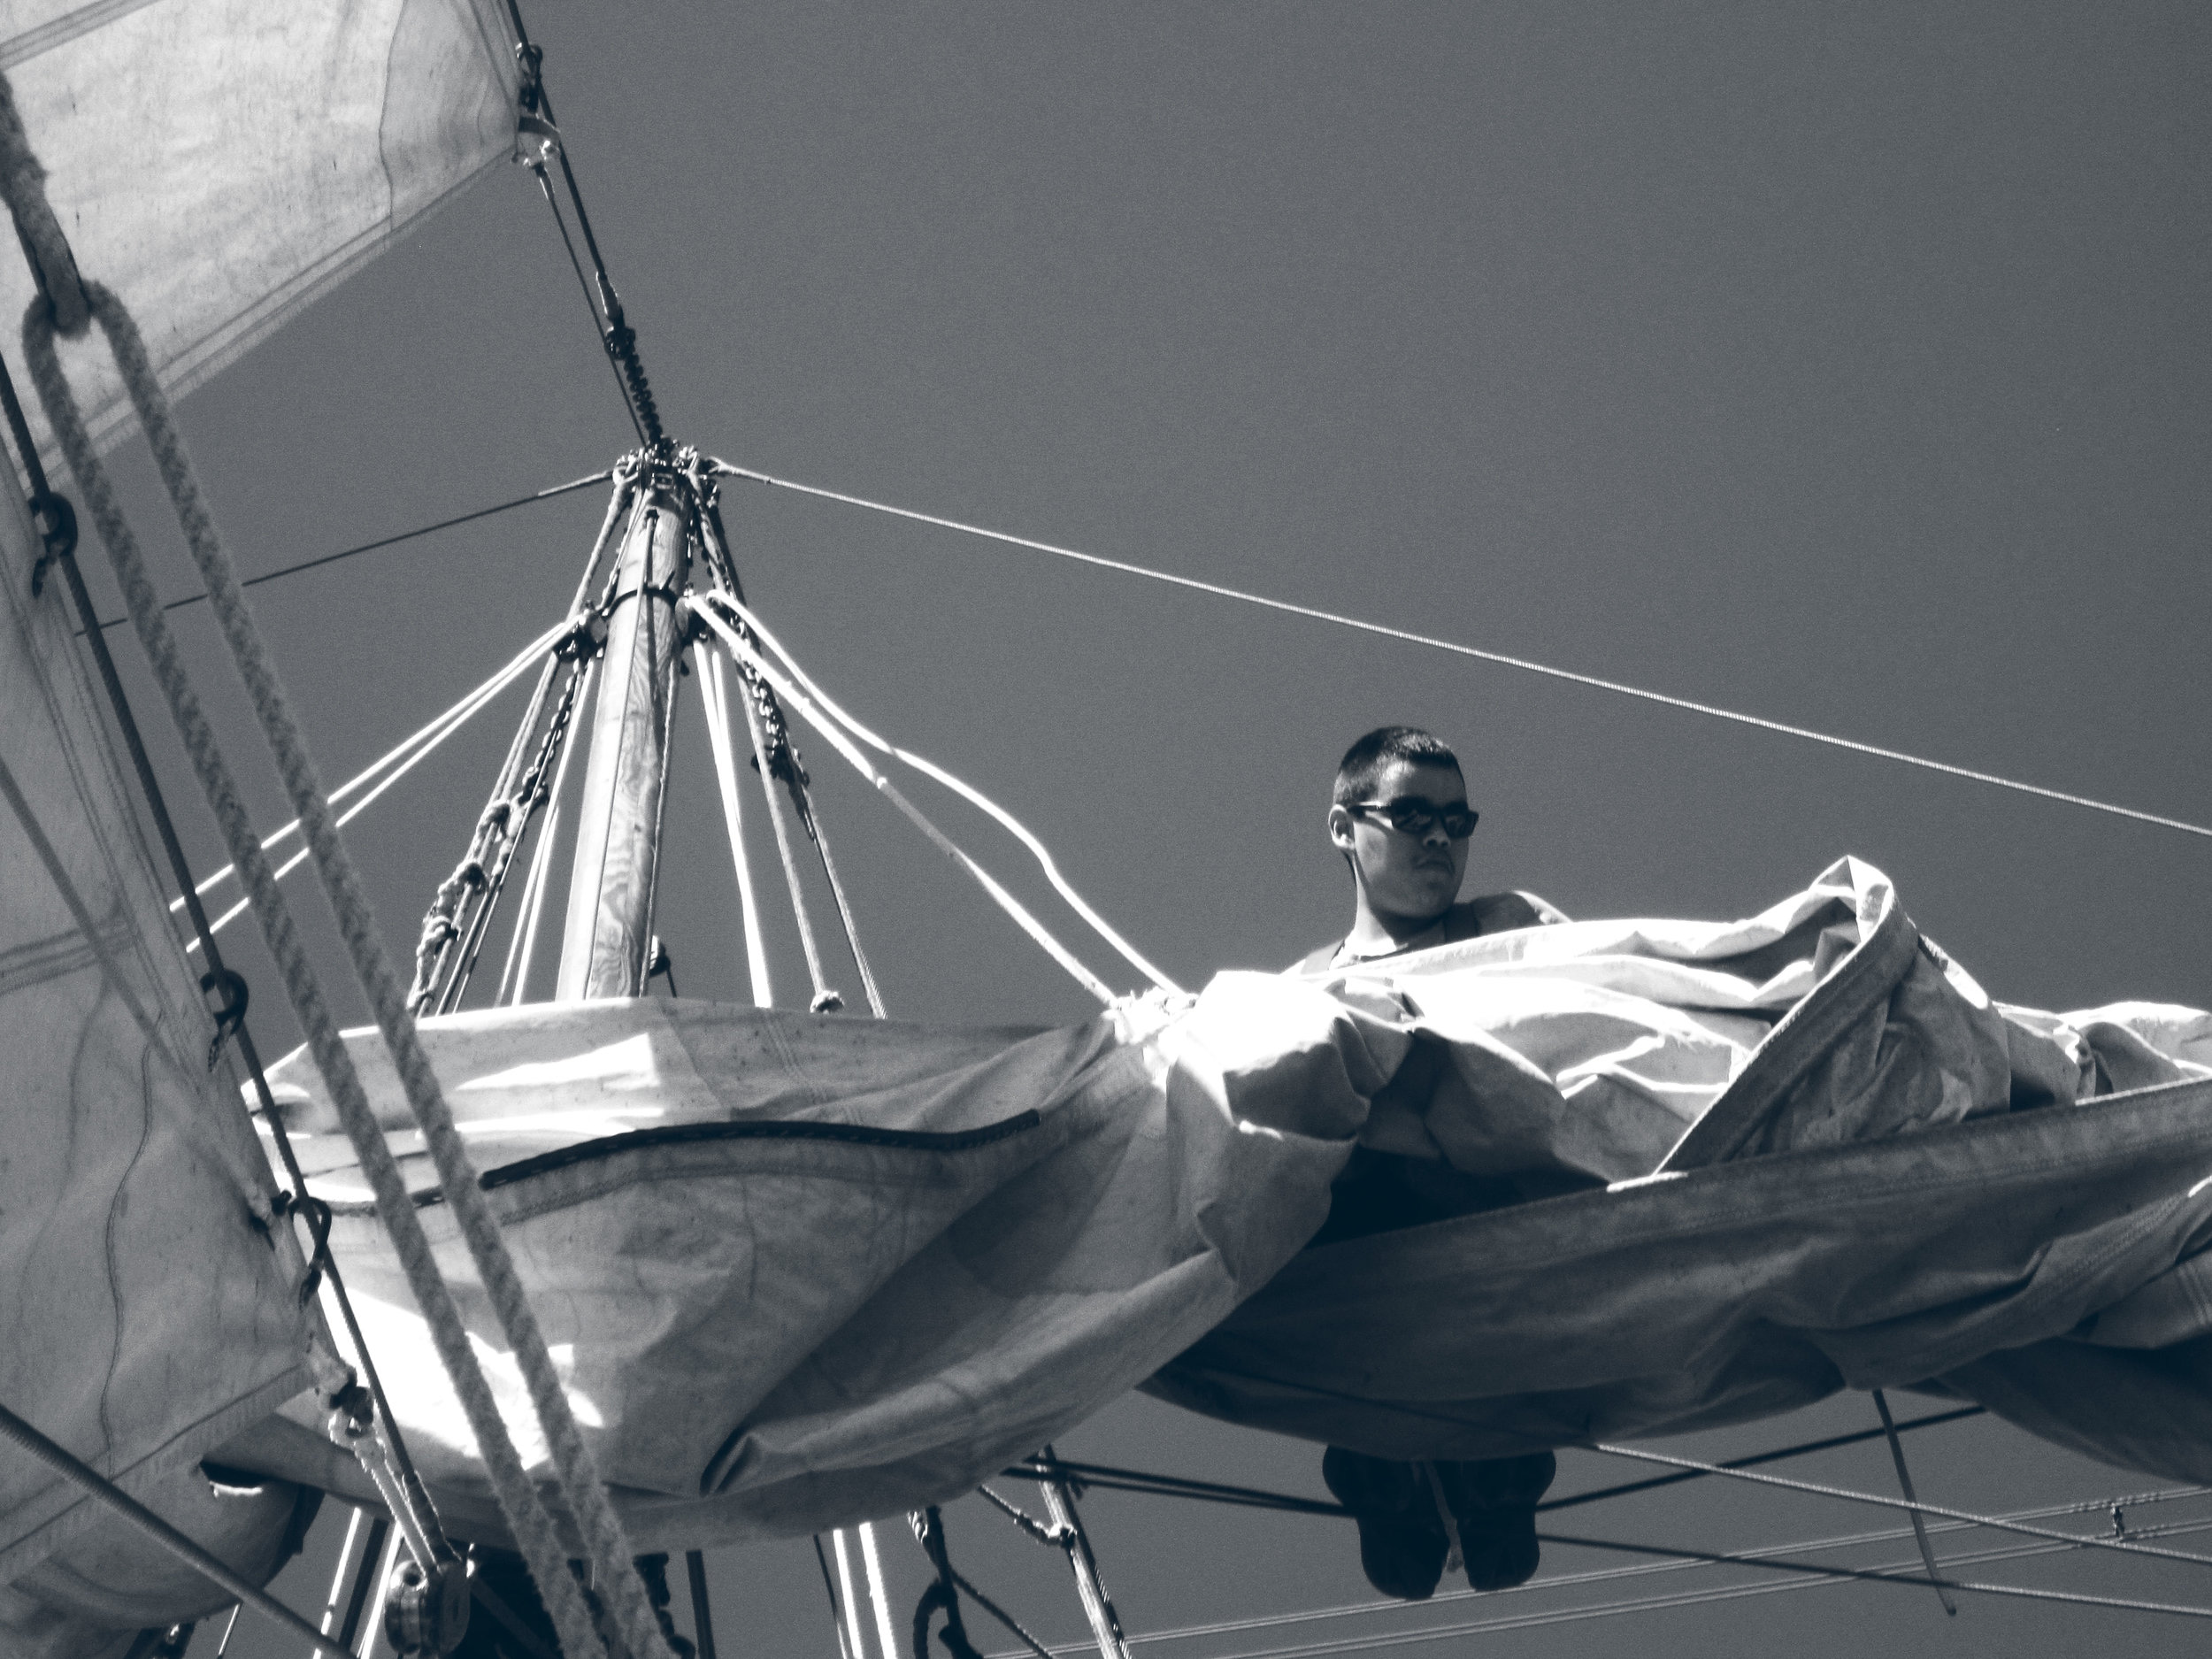 Robert-furling-sail-2.jpg